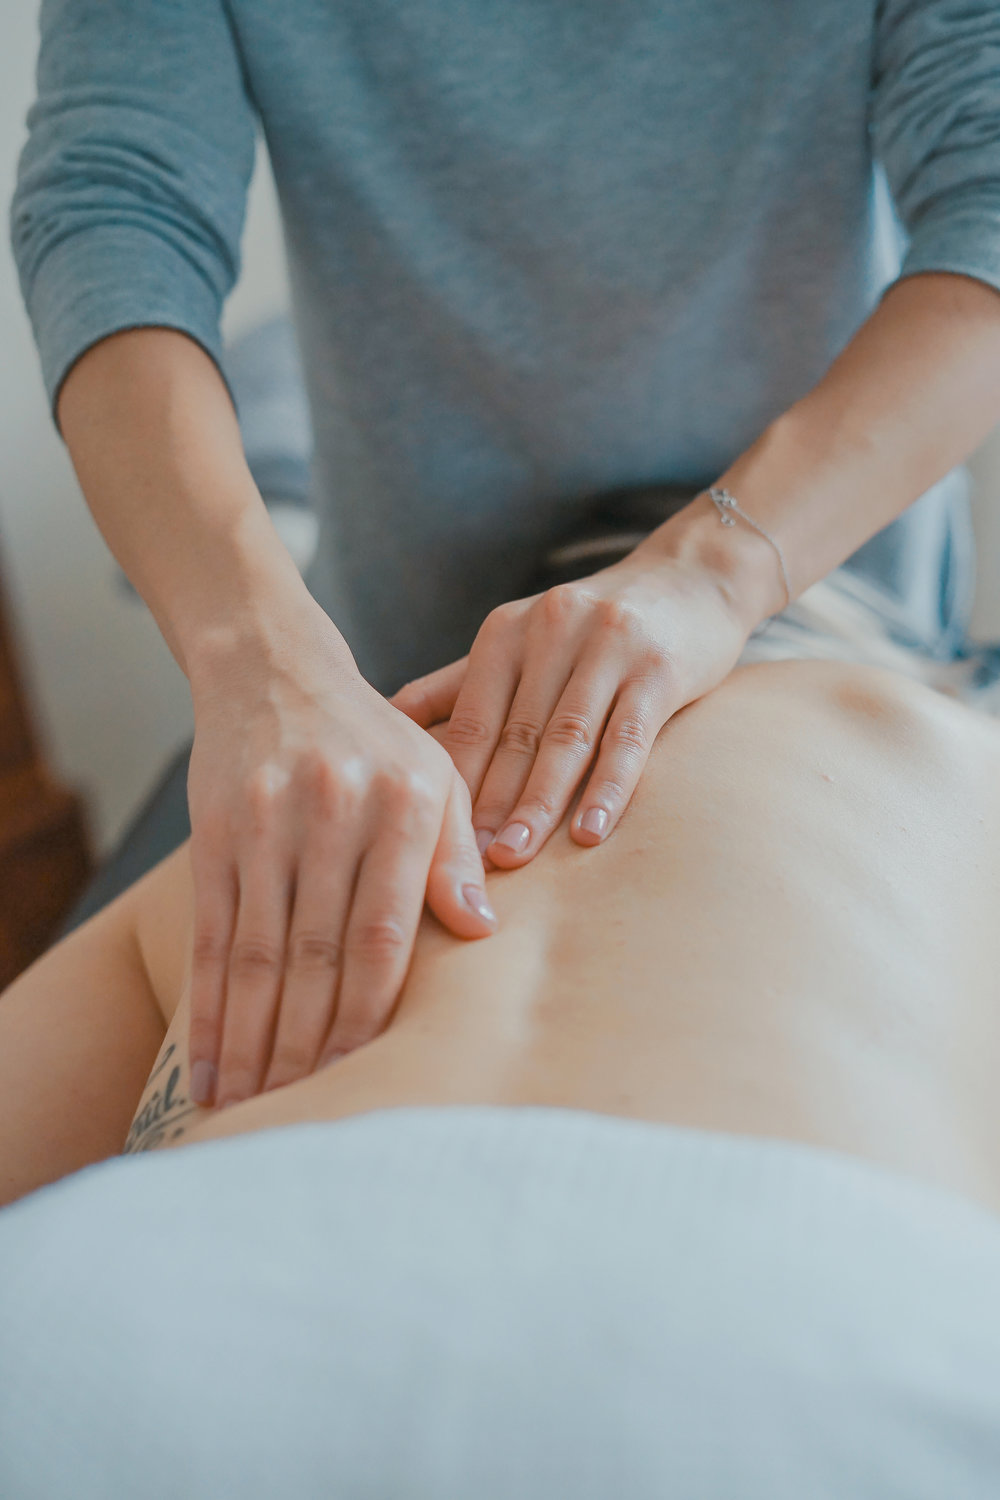 MANUAL LYMPHATIC DRAINAGE -